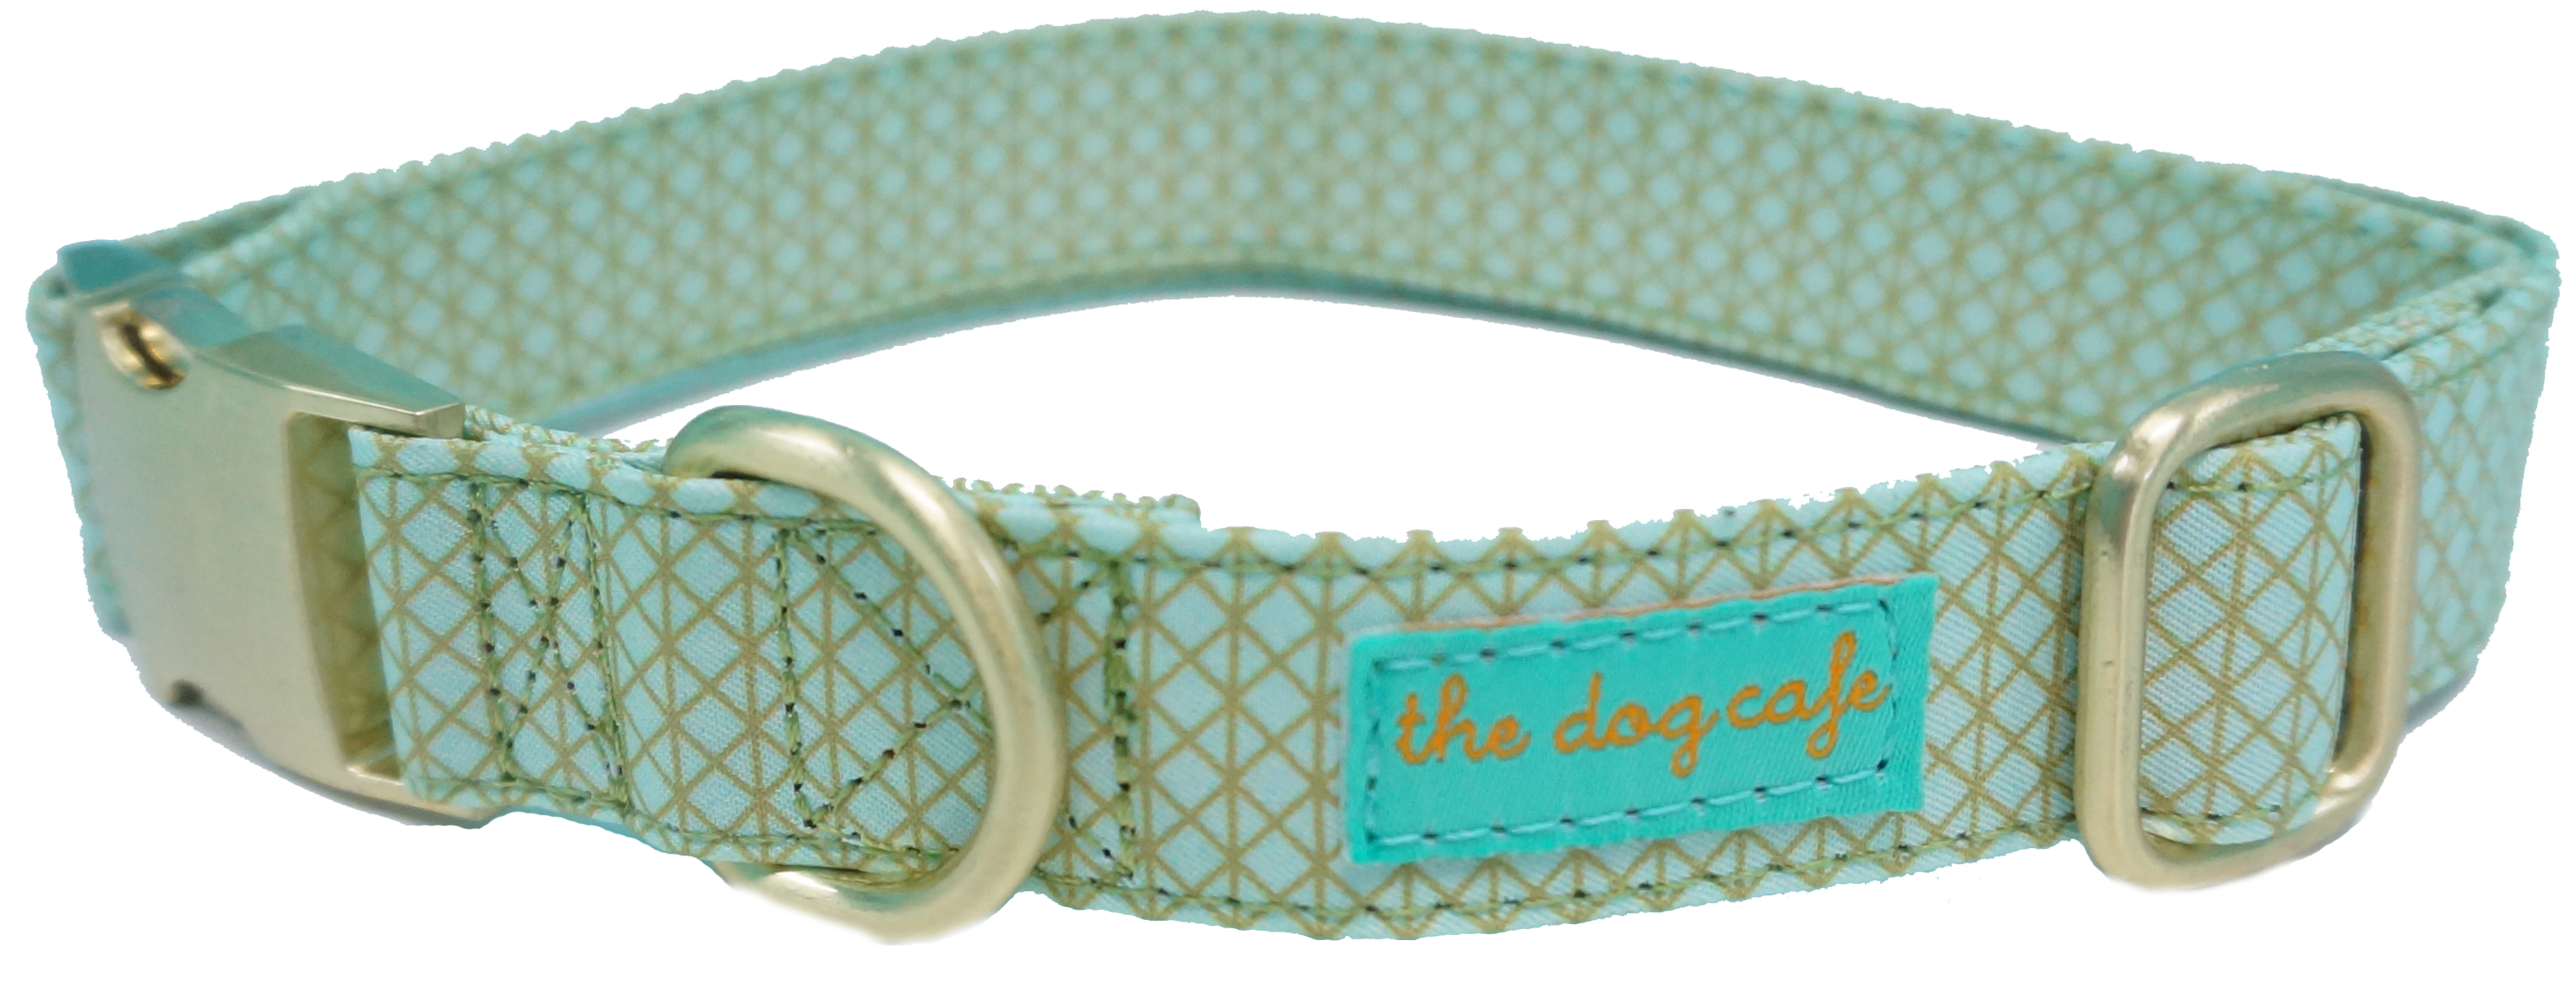 green collar by the dog cafe thedogcafe 00014 green collar by the dog cafe